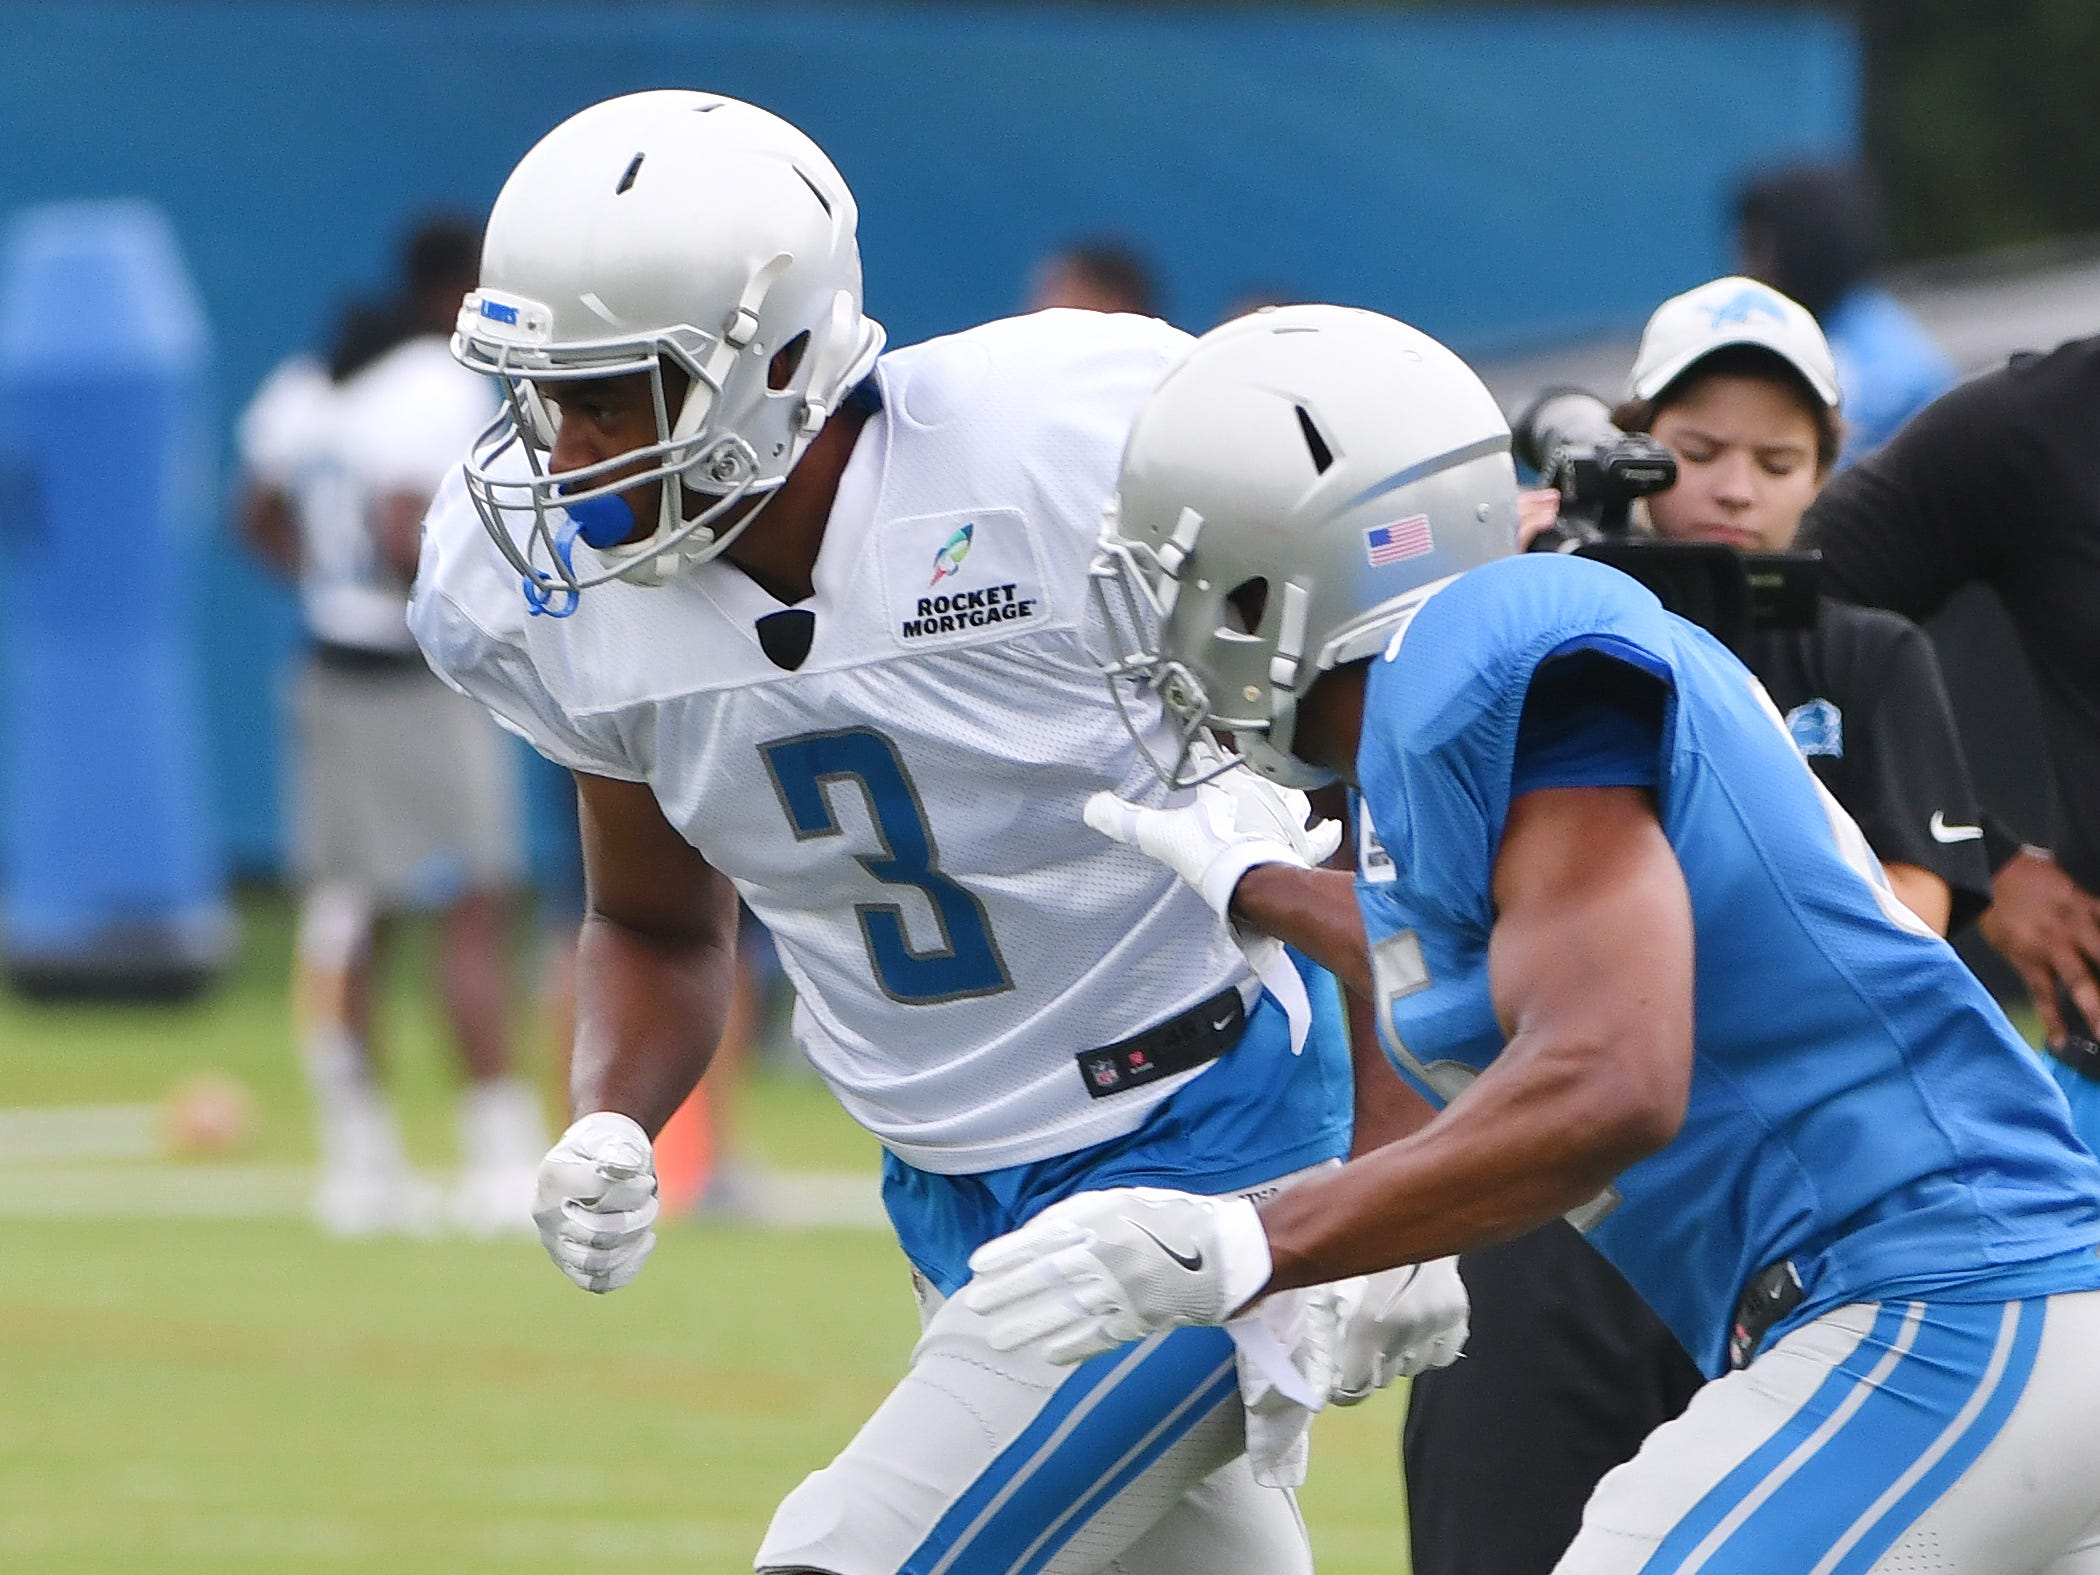 Lions wide receiver Dontez Alexander and safety Charles Washington work during a drill involving bursting off the line of scrimmage against a defender.